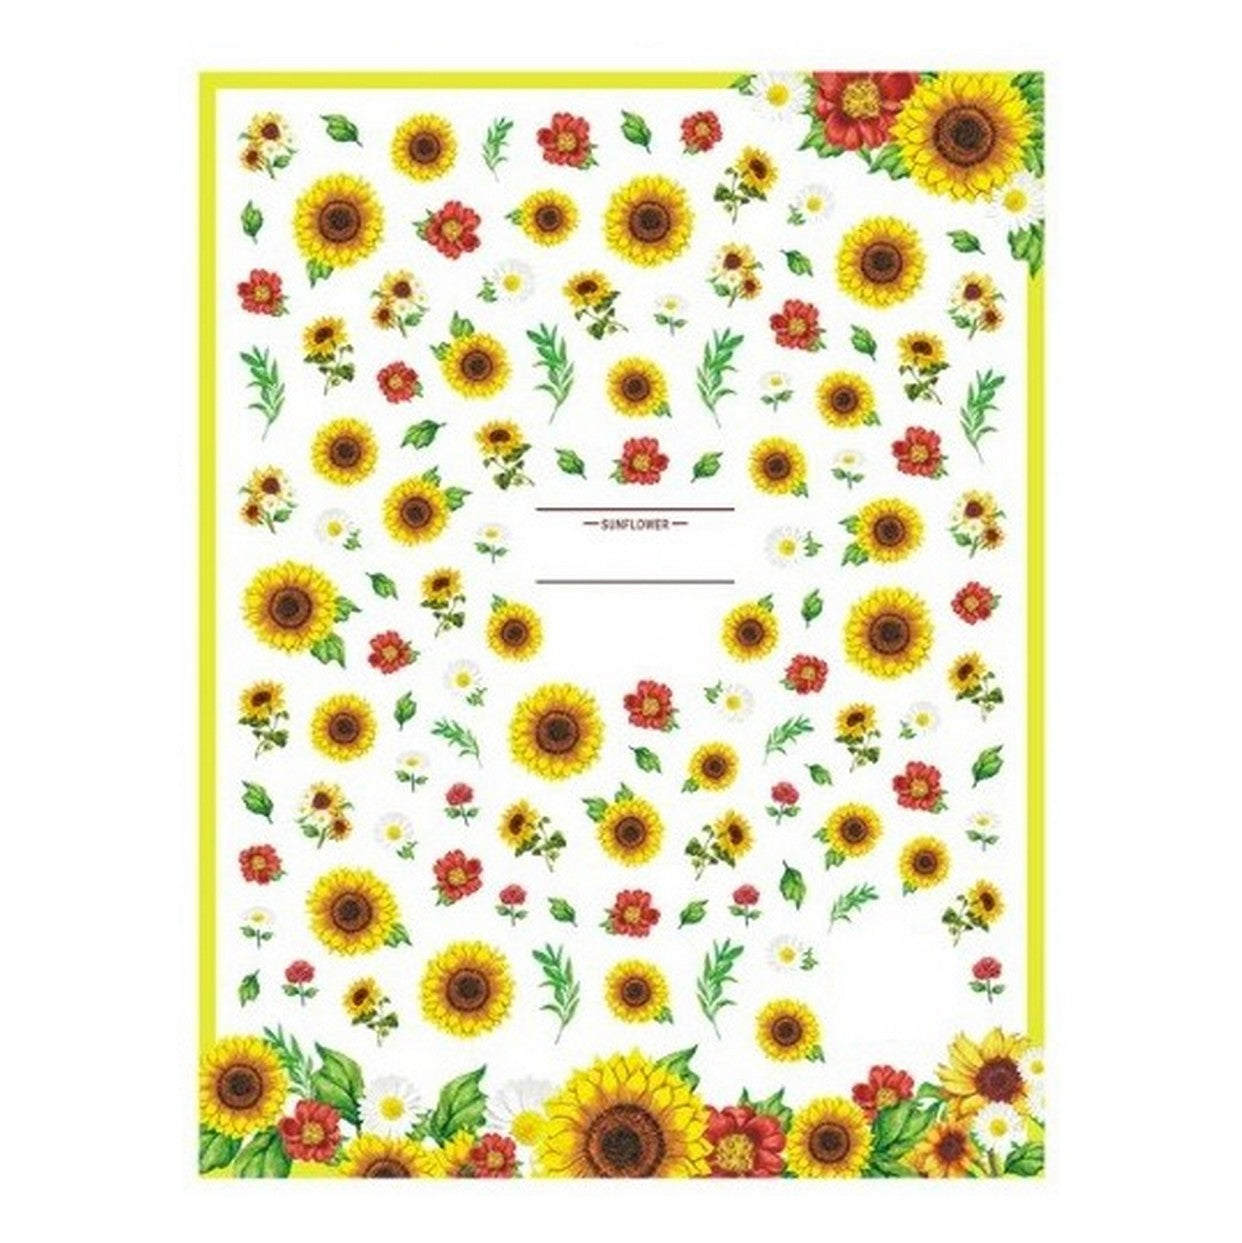 Flower Sunflowers Nail Stickers